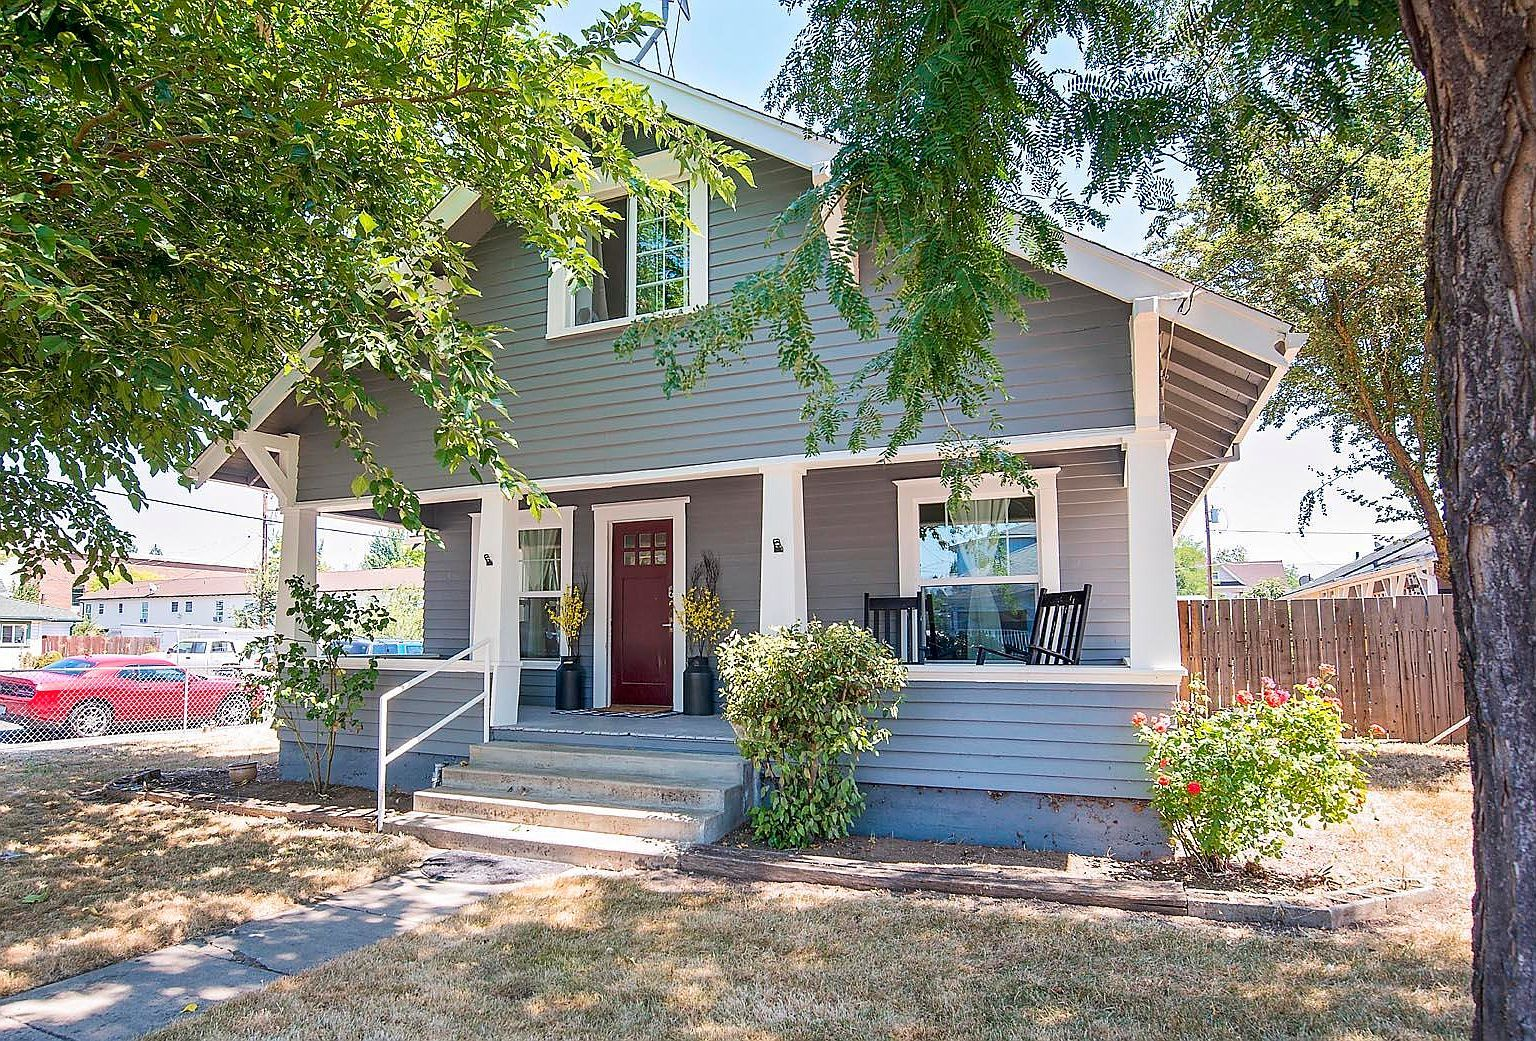 305 Laurel St Medford Or 97501 Mls 220102969 Zillow In 2020 Cottage Style Homes Cottage Style Beach Cottages